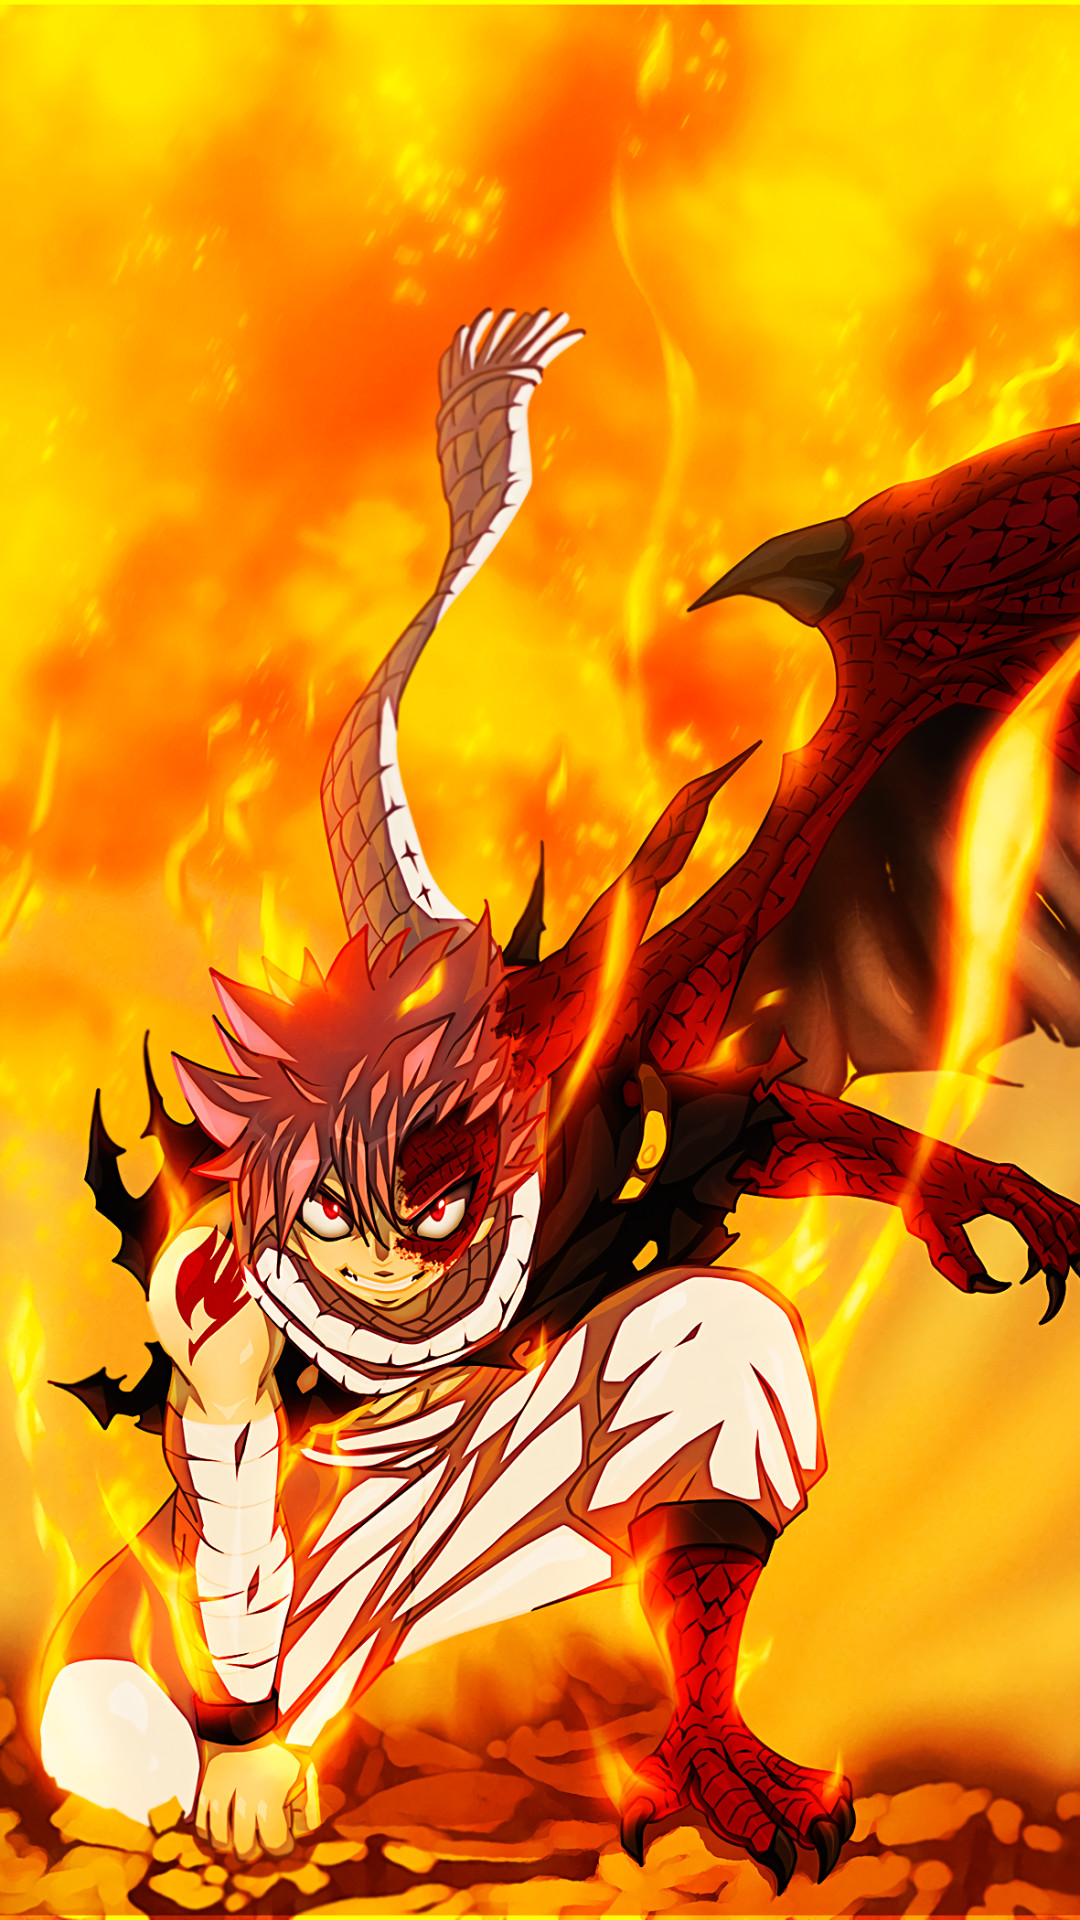 1080x1920 Anime Fairy Tail Natsu Dragneel Fire Mobile Wallpaper